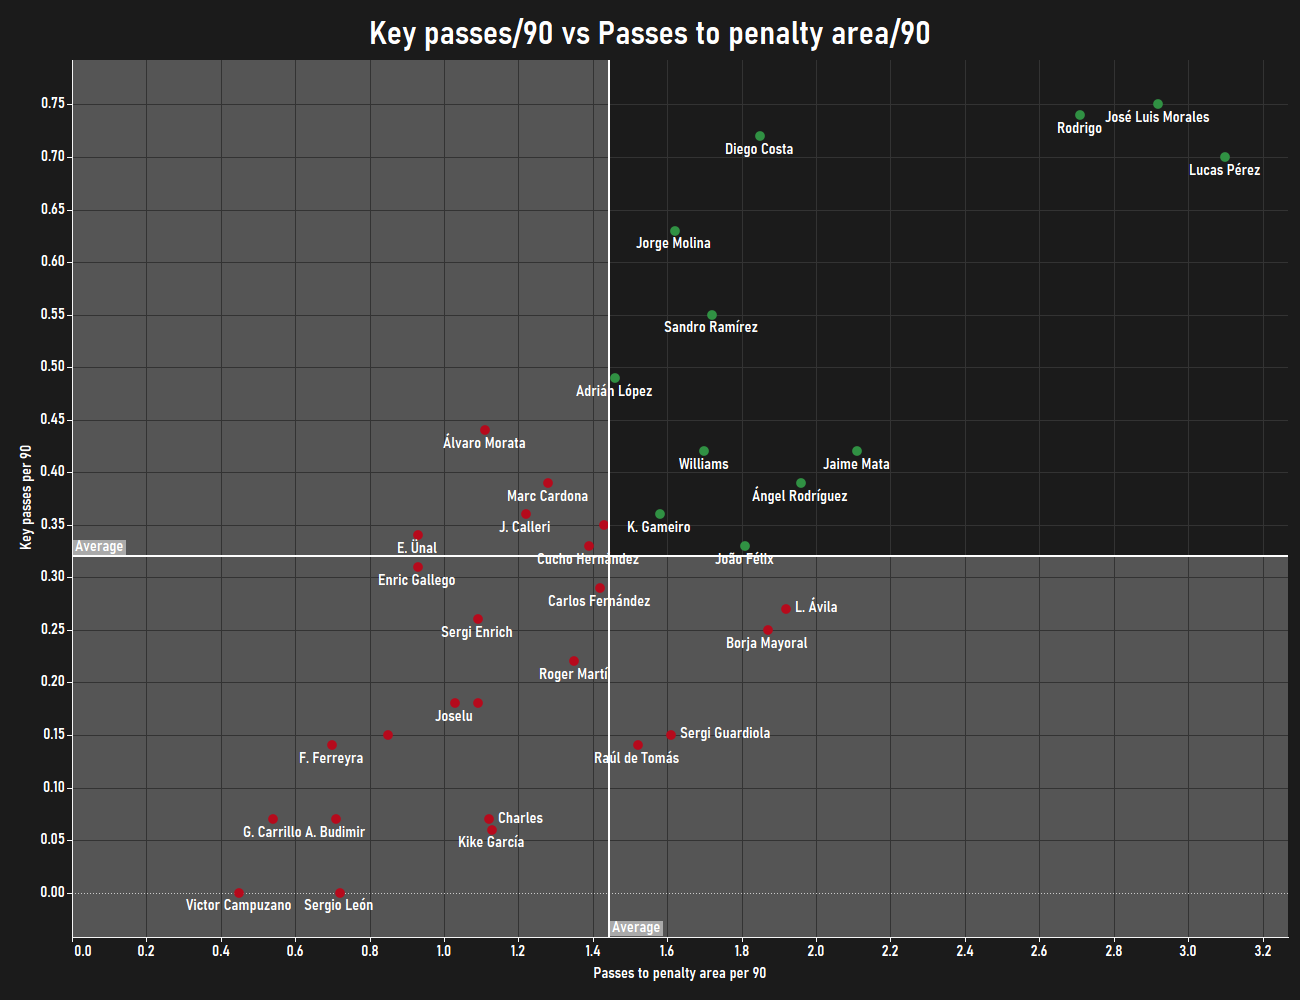 Finding the best centre-forwards from lower possession teams in LaLiga - data analysis statistics